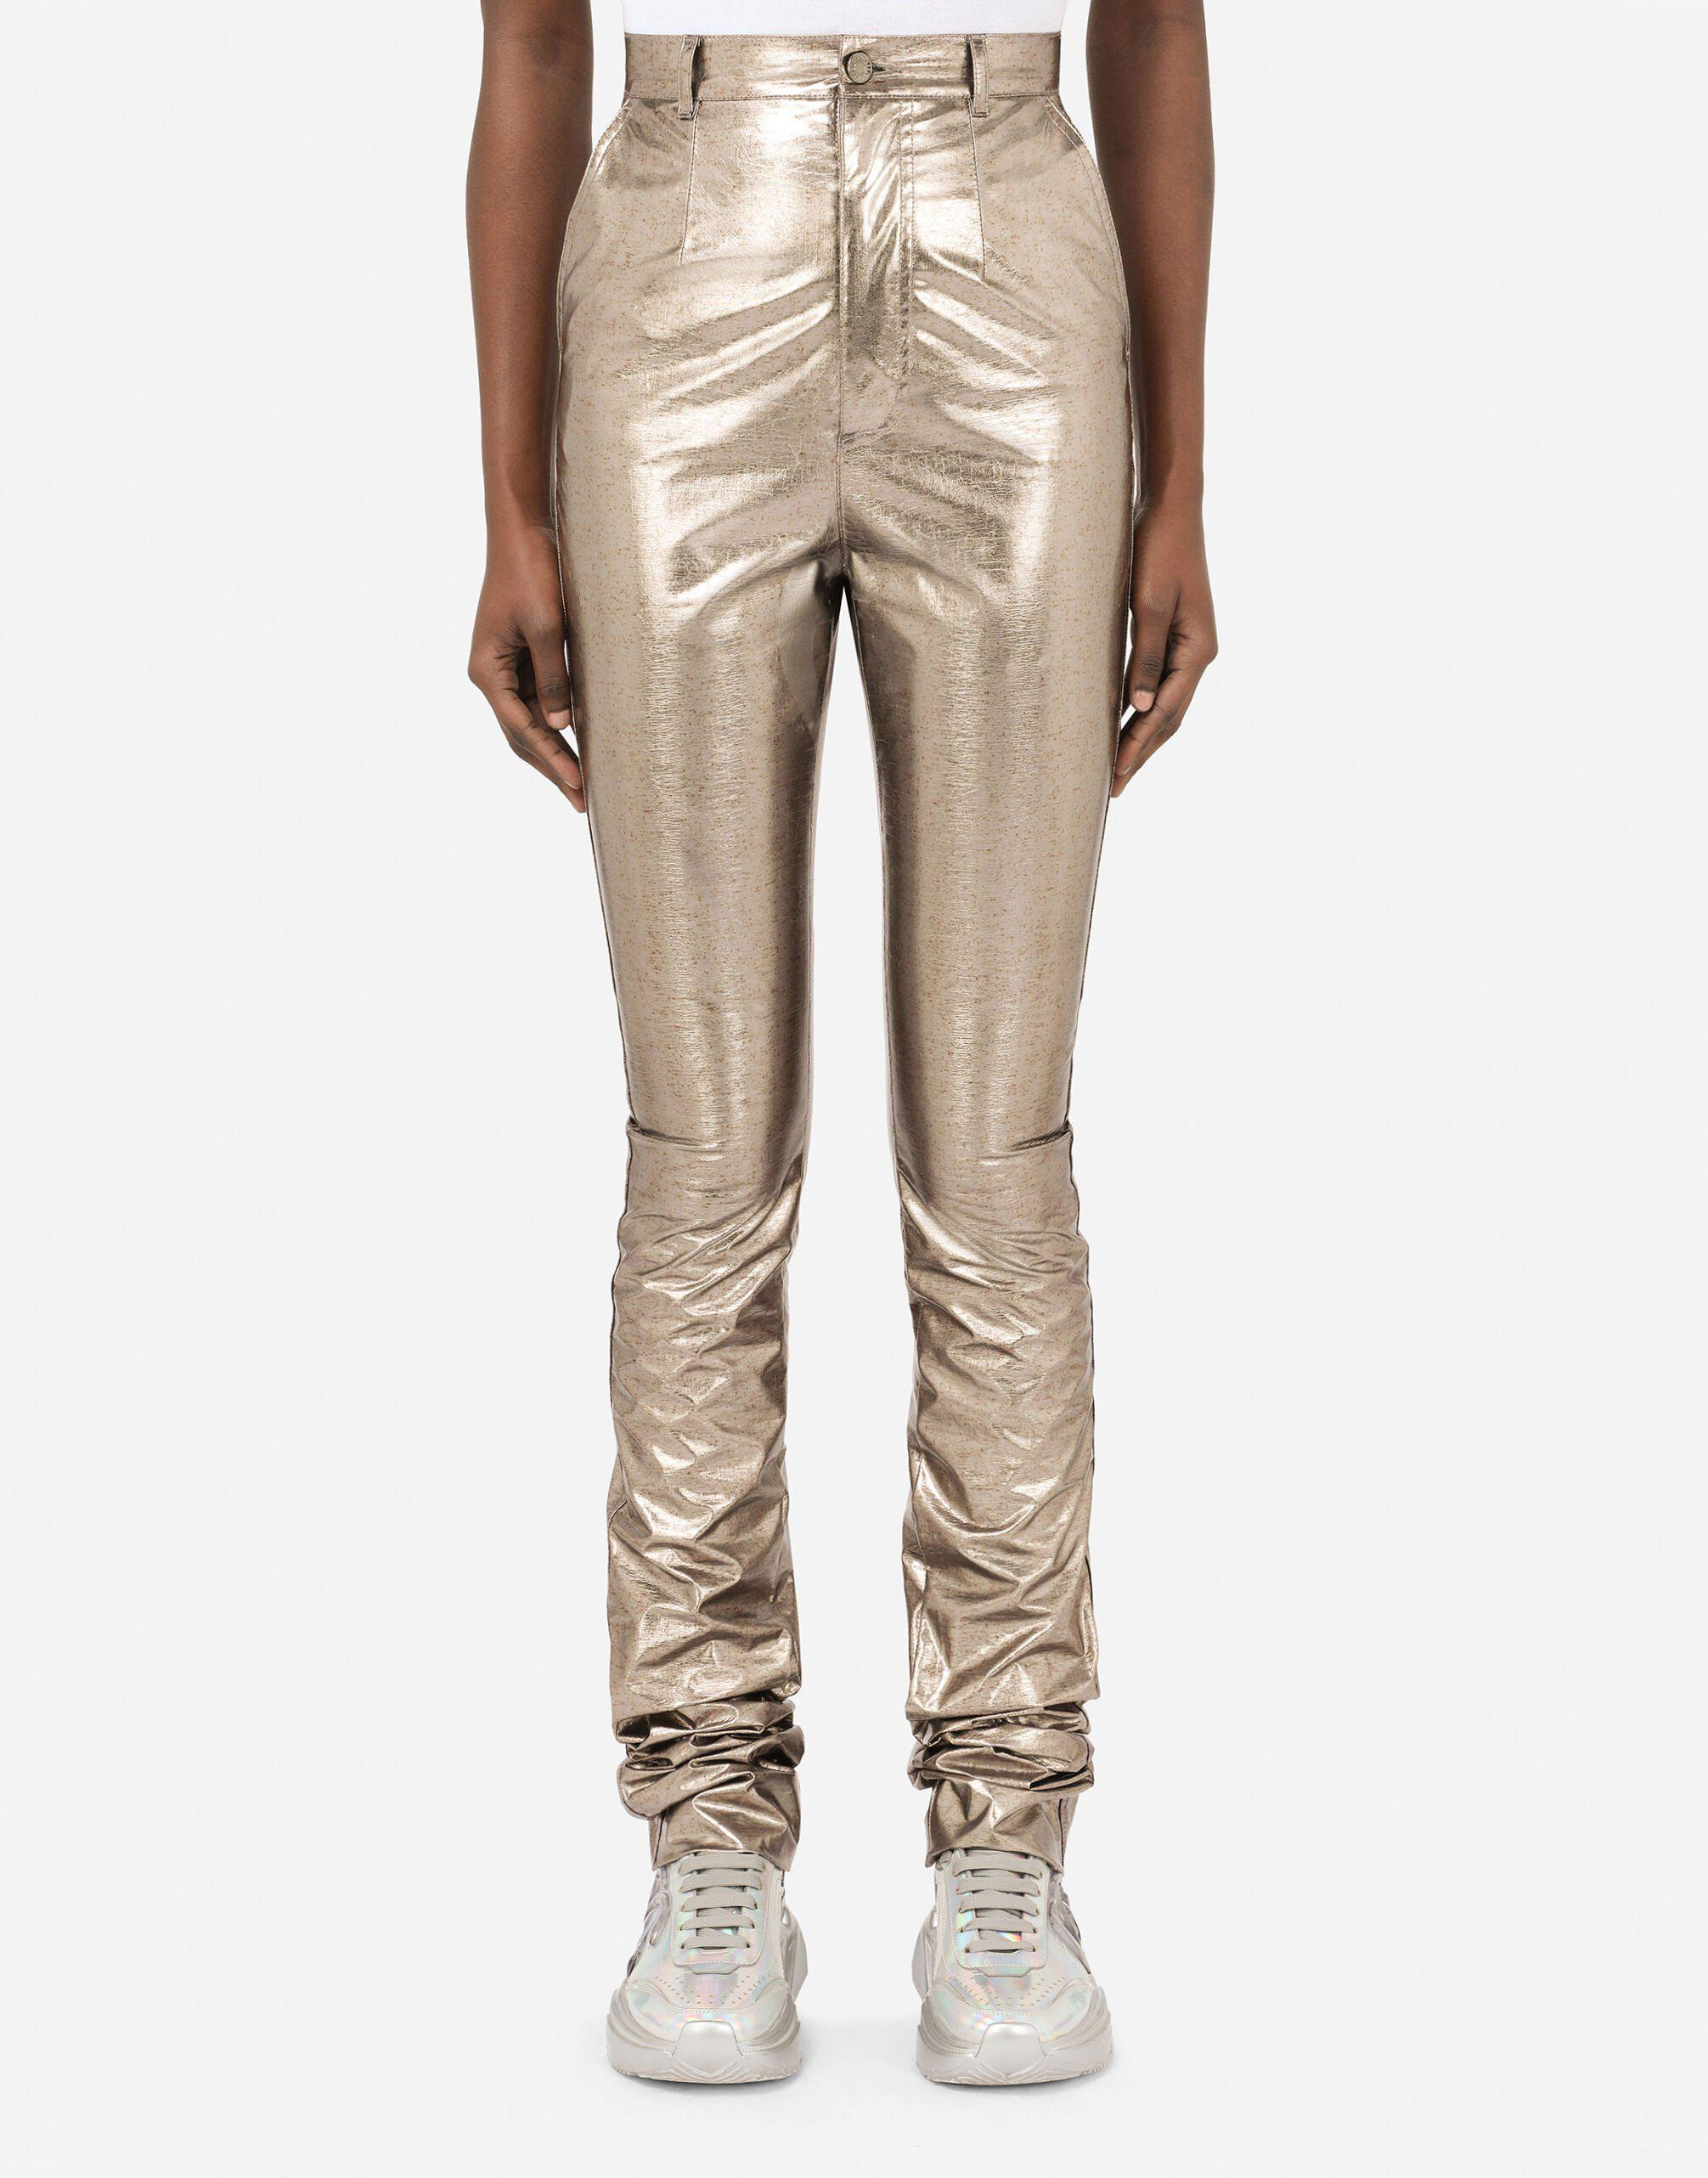 Foiled fabric pants with draping